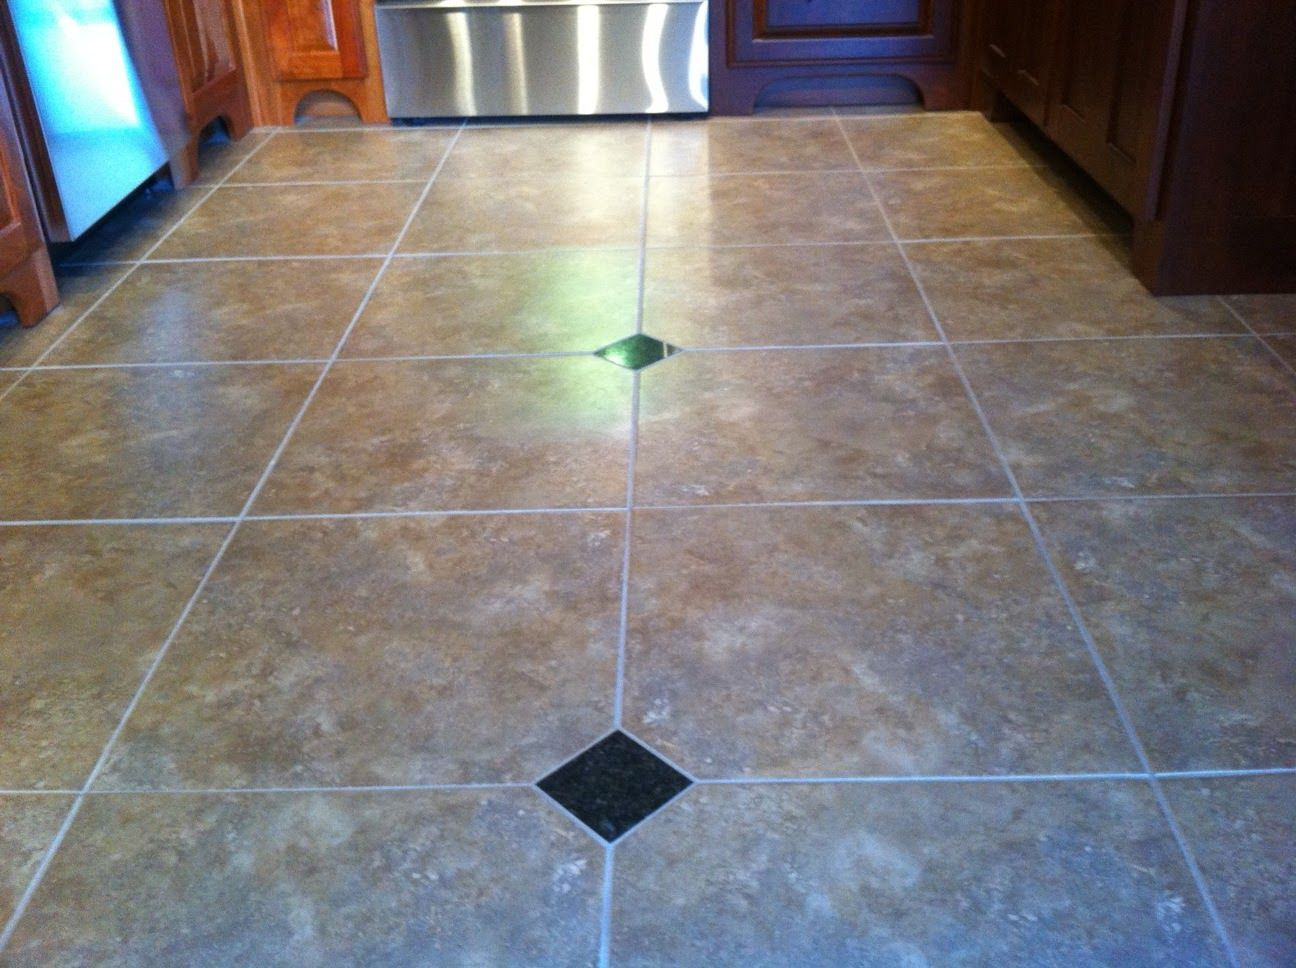 17 best images about beautiful flooring on pinterest flooring ideas what you think and hardwood floors - Tile Floors